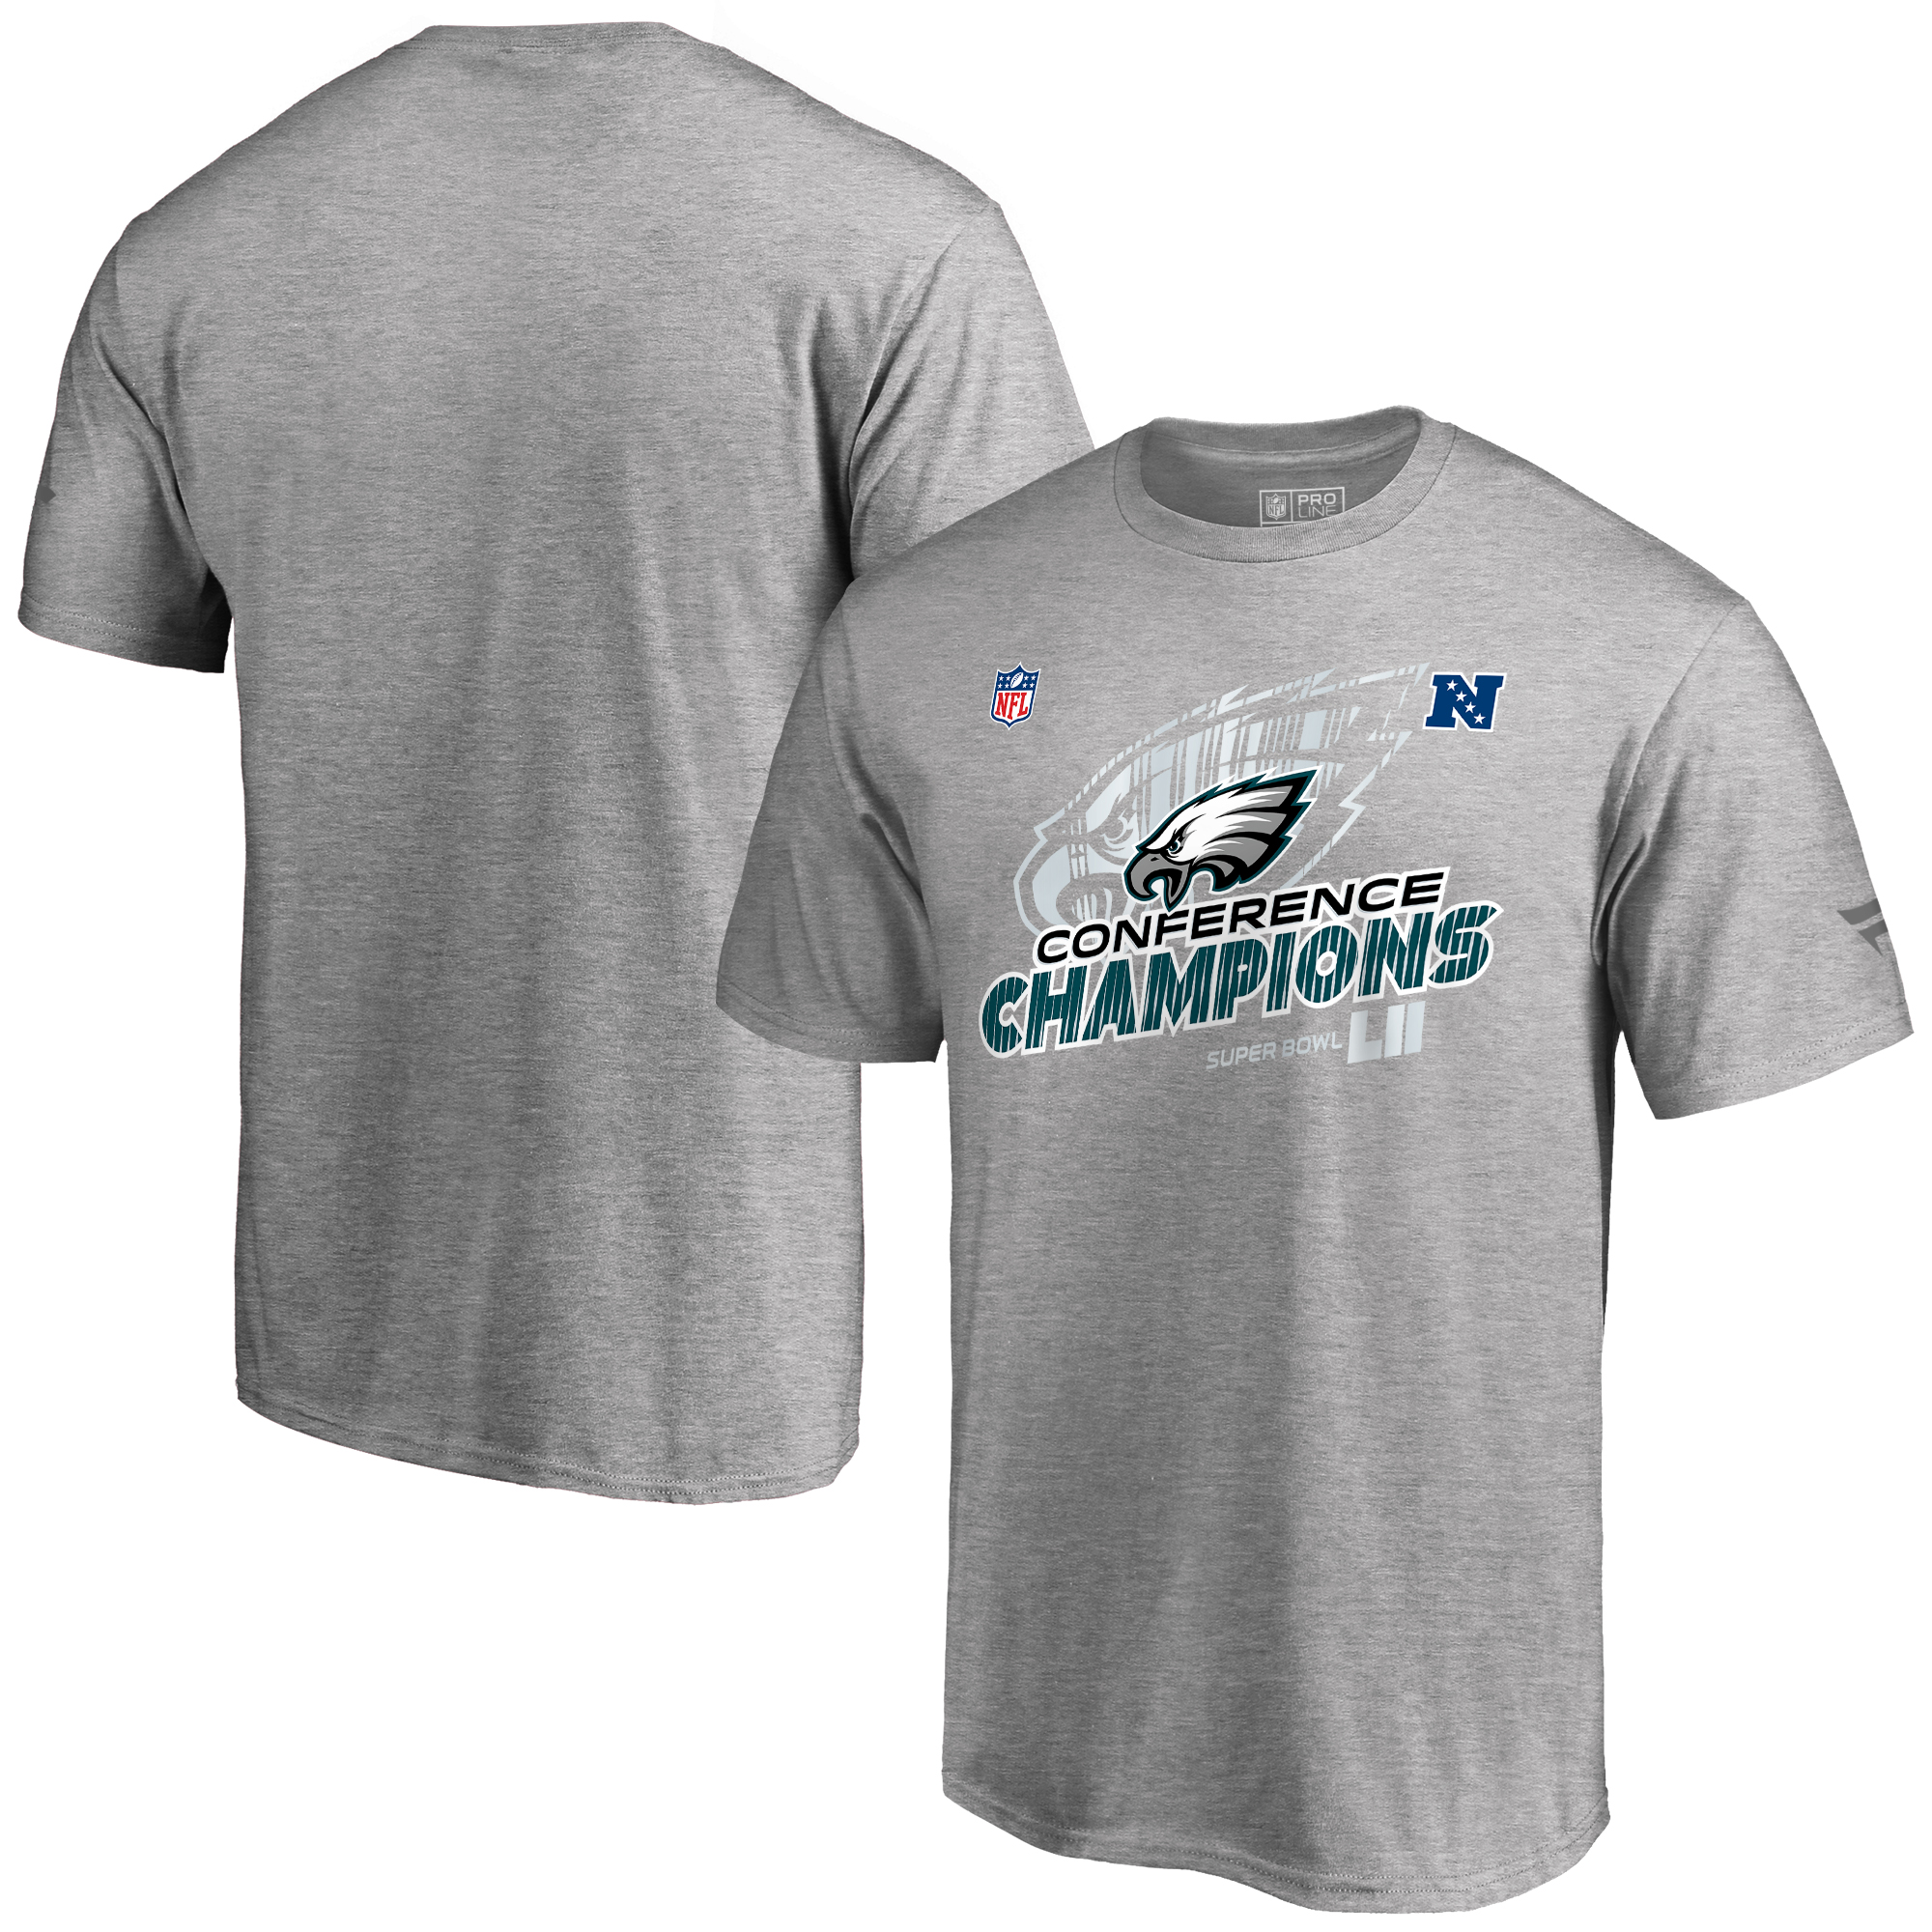 Philadelphia Eagles NFL Pro Line by Fanatics Branded 2017 NFC Champions Trophy Collection Locker Room T-Shirt - Heather Gray